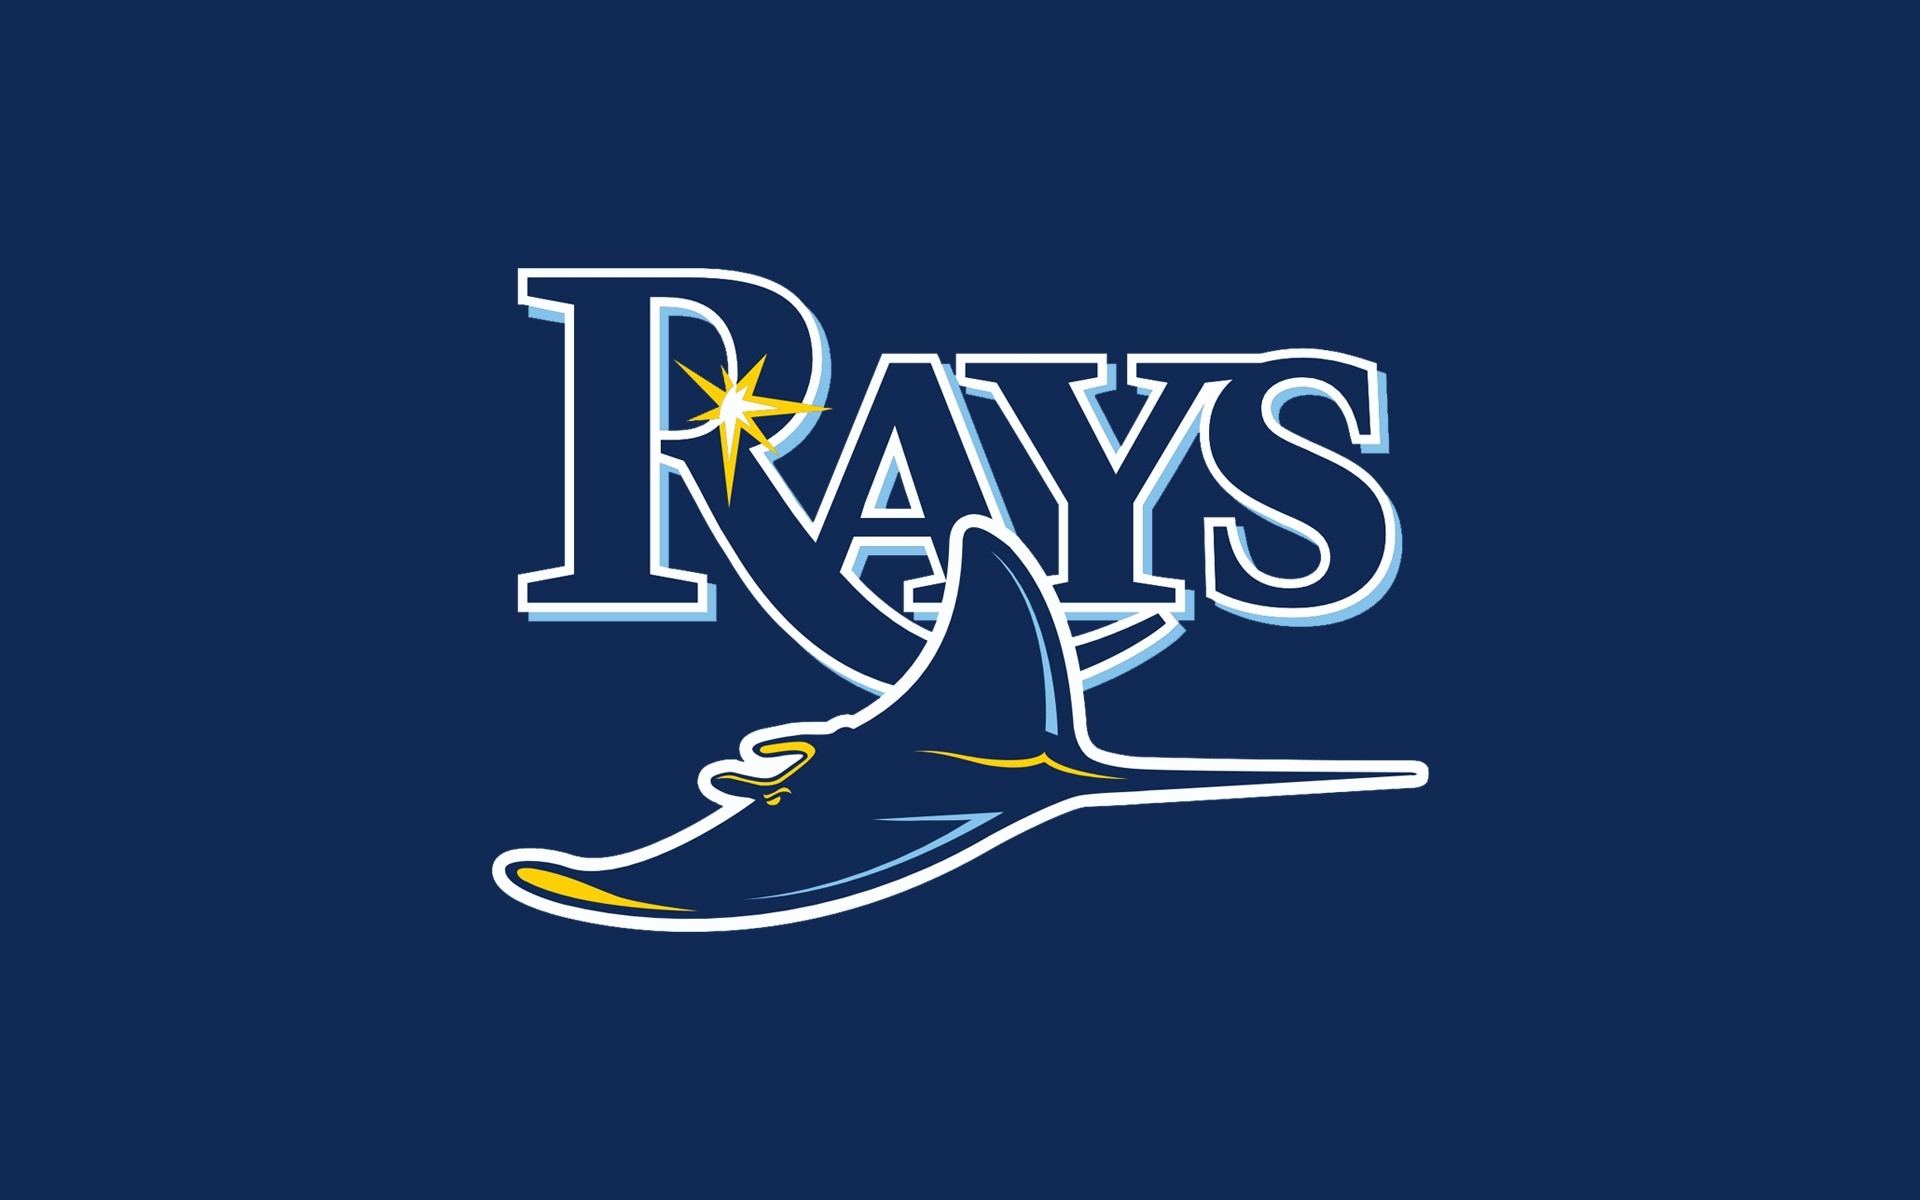 tampa bay rays desktop wallpaper (62+ images)